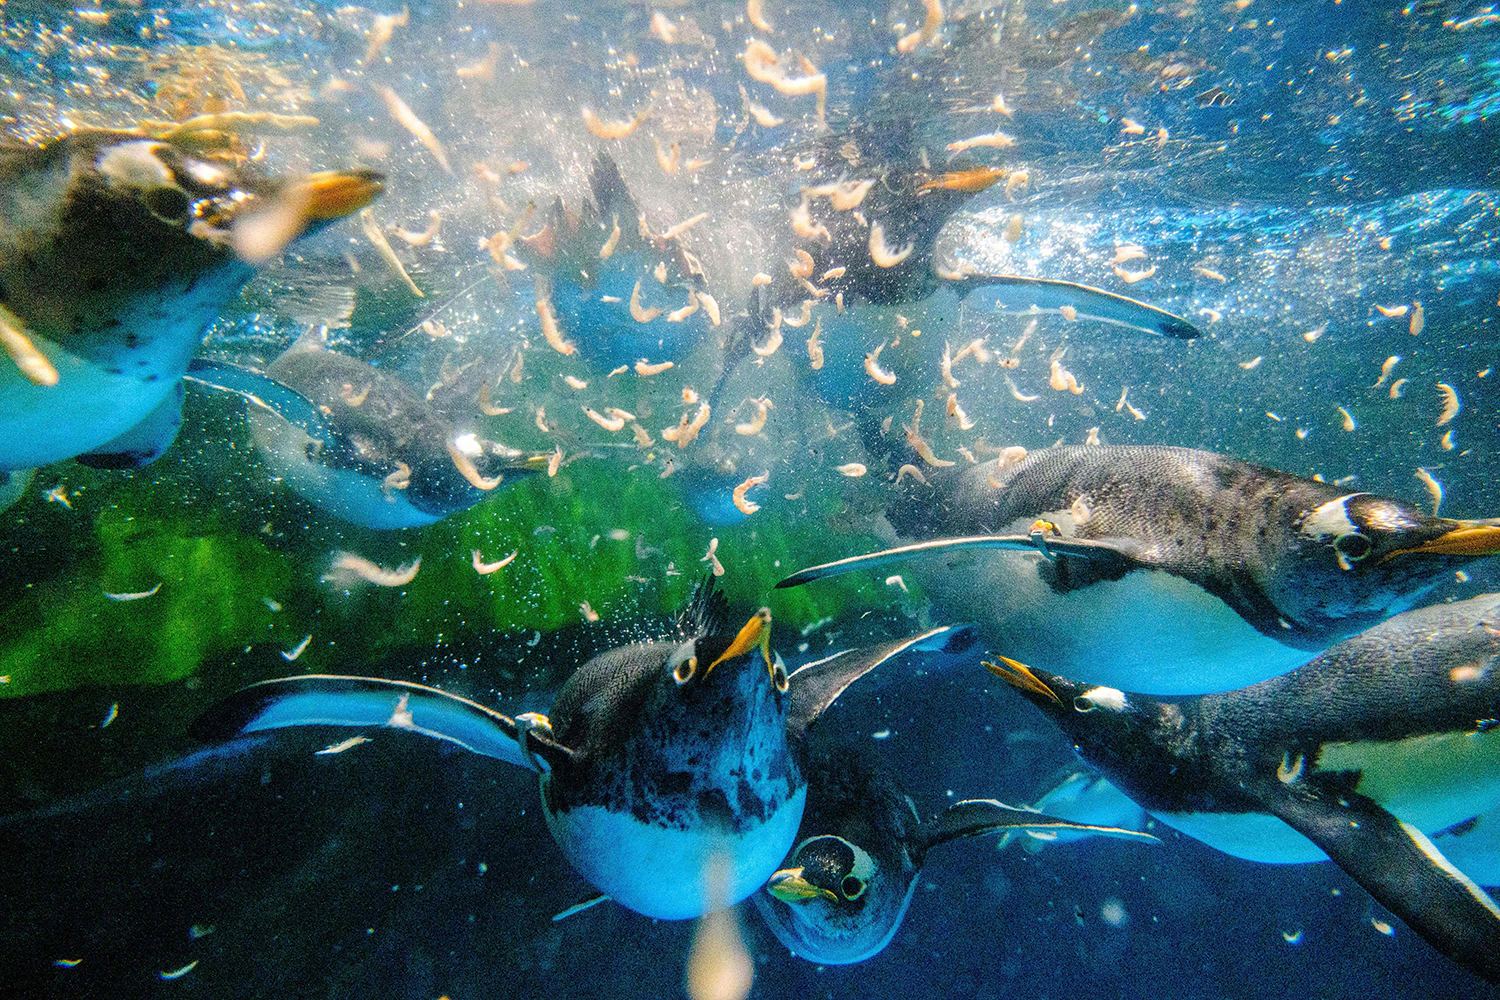 Gentoo penguins chase krill during feeding time in their enclosure at Ocean Park theme park in Hong Kong on May 4. ANTHONY WALLACE/AFP via Getty Images